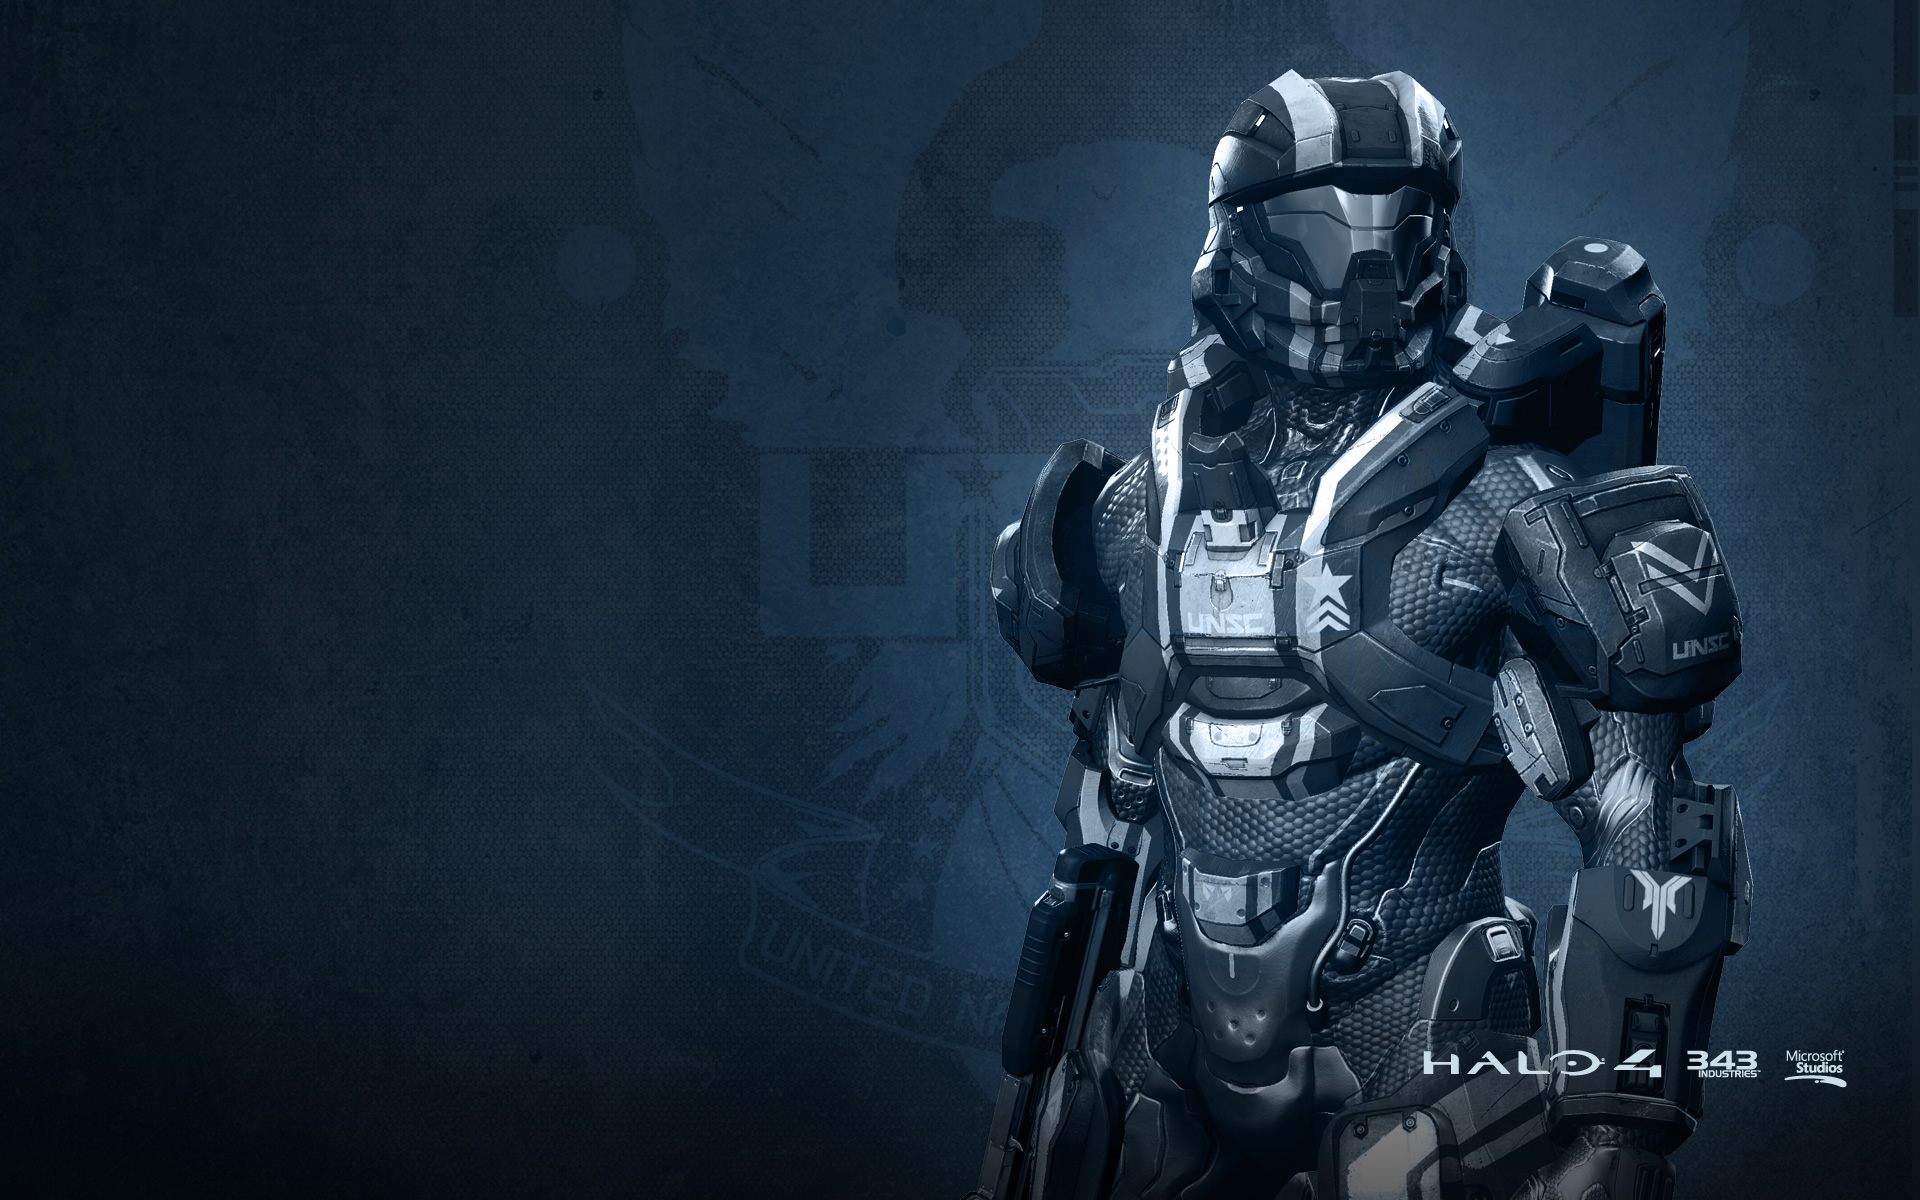 Halo 4 Full HD Wallpaper And Background Image